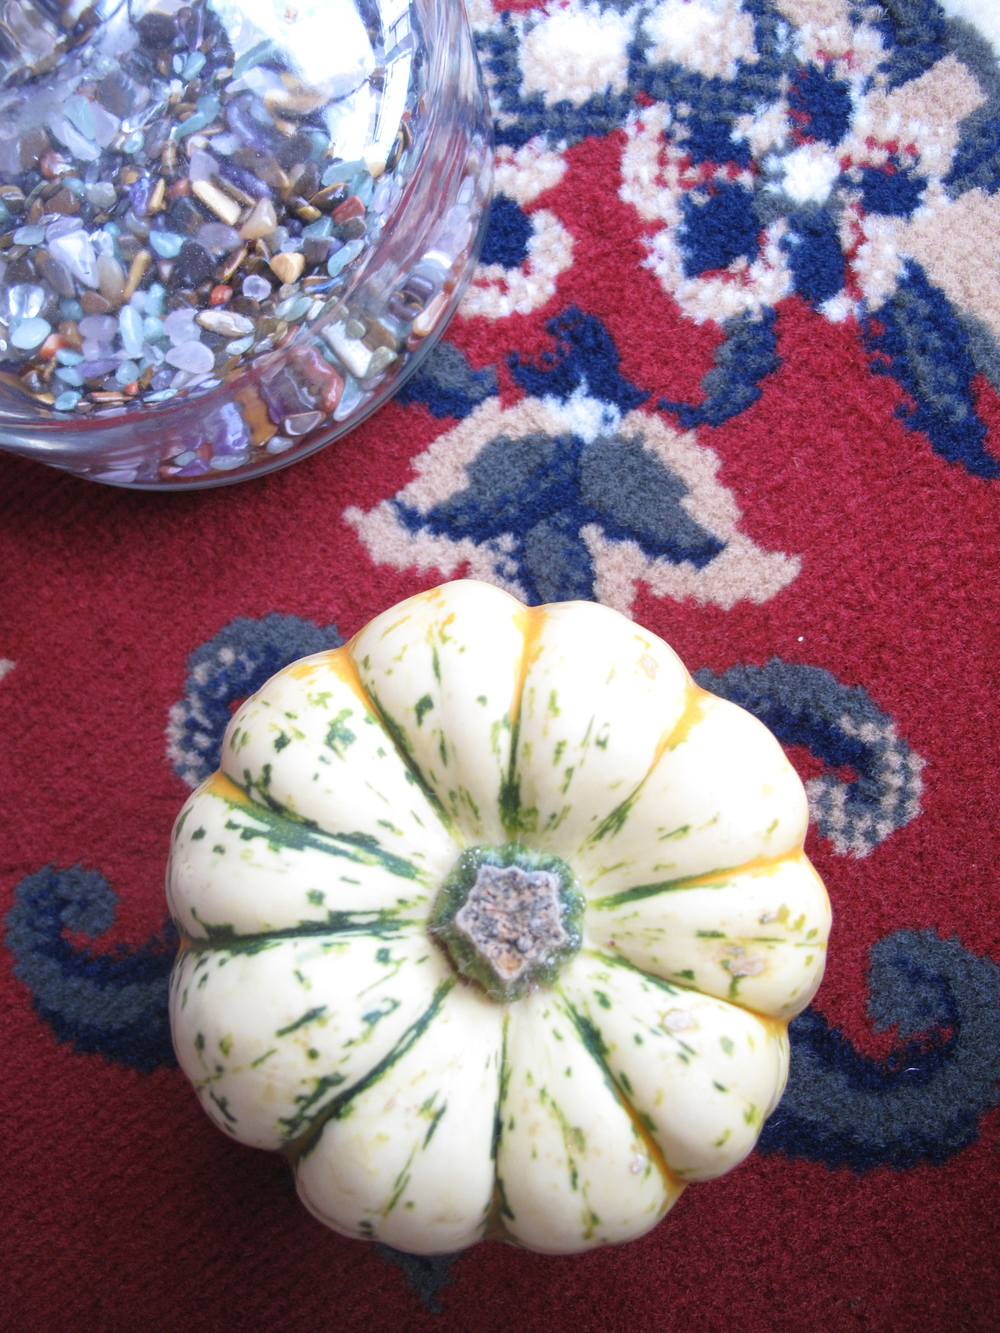 Pumpkin and patterned carpet.